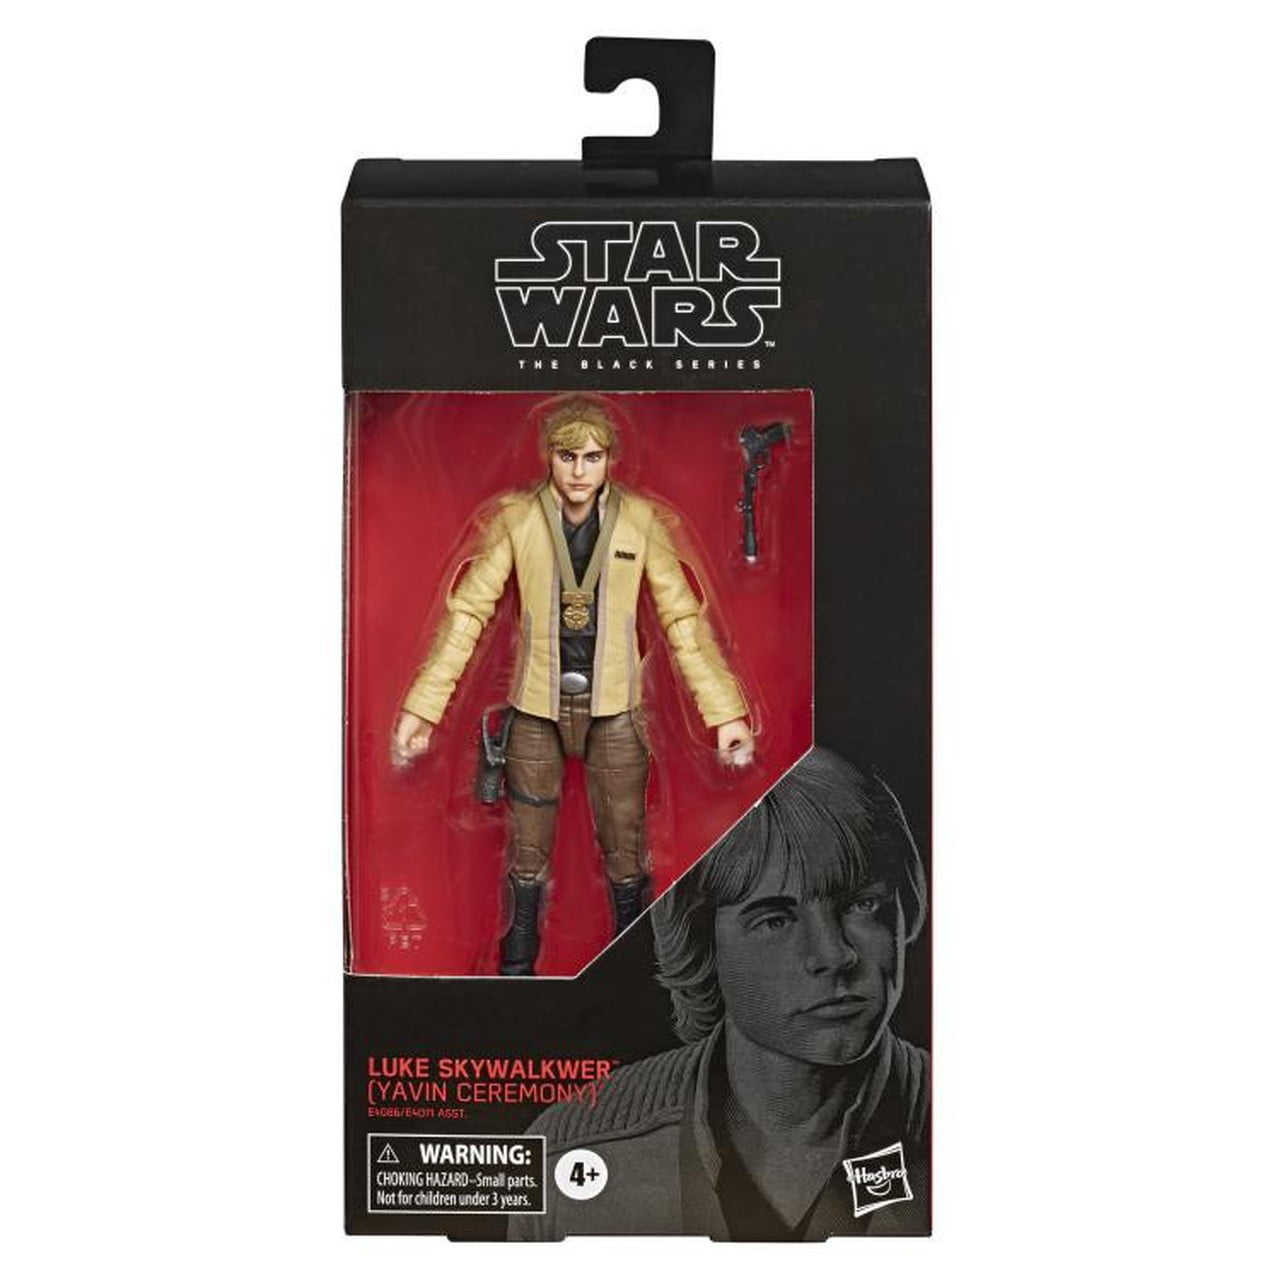 Star Wars The Black Series Luke Skywalker Yavin Ceremony